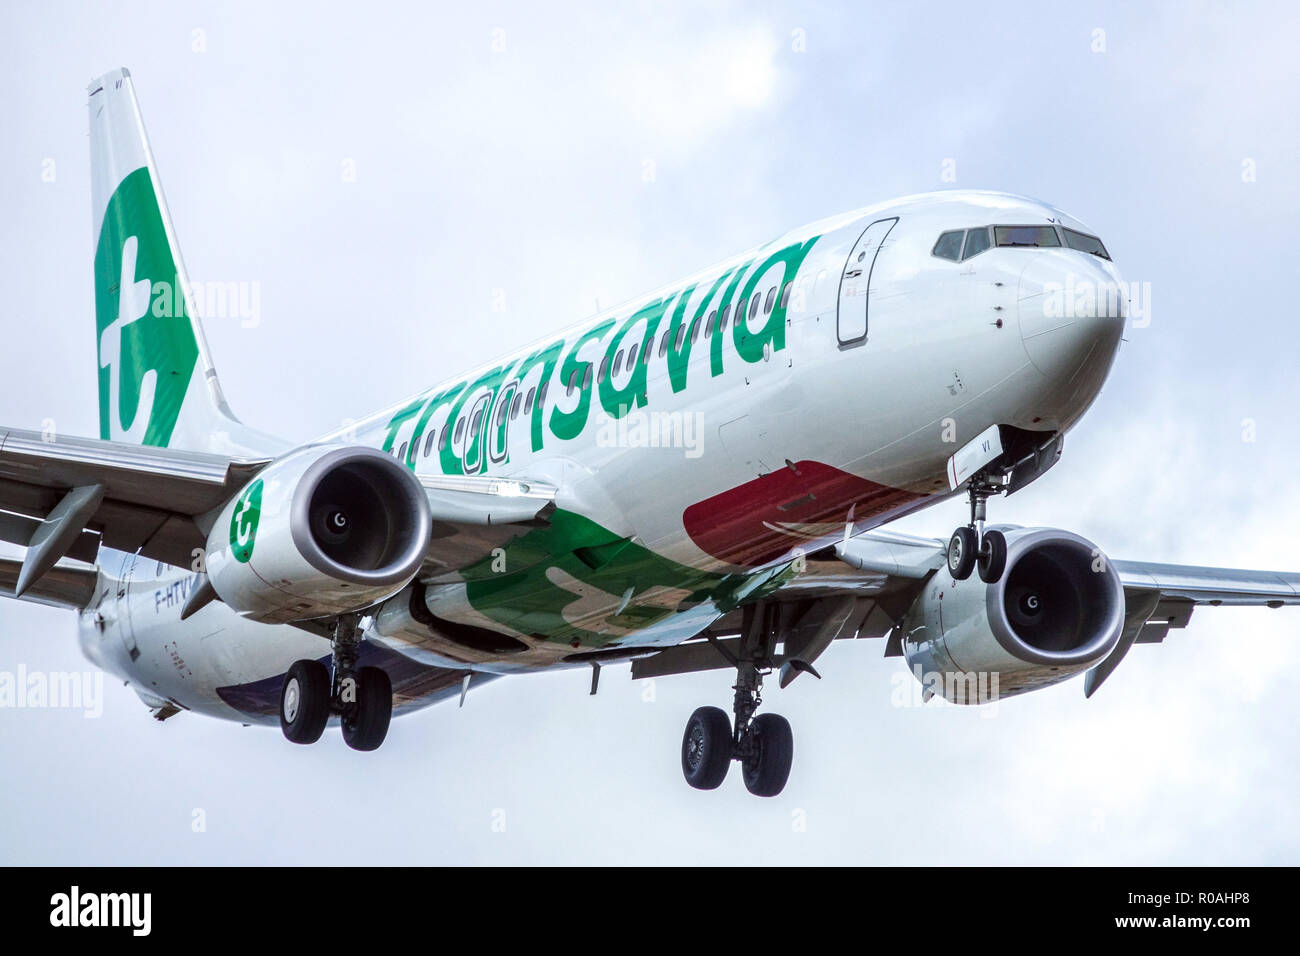 Plane Boeing 737 Transavia landing, chassis of aircraft, eject - Stock Image